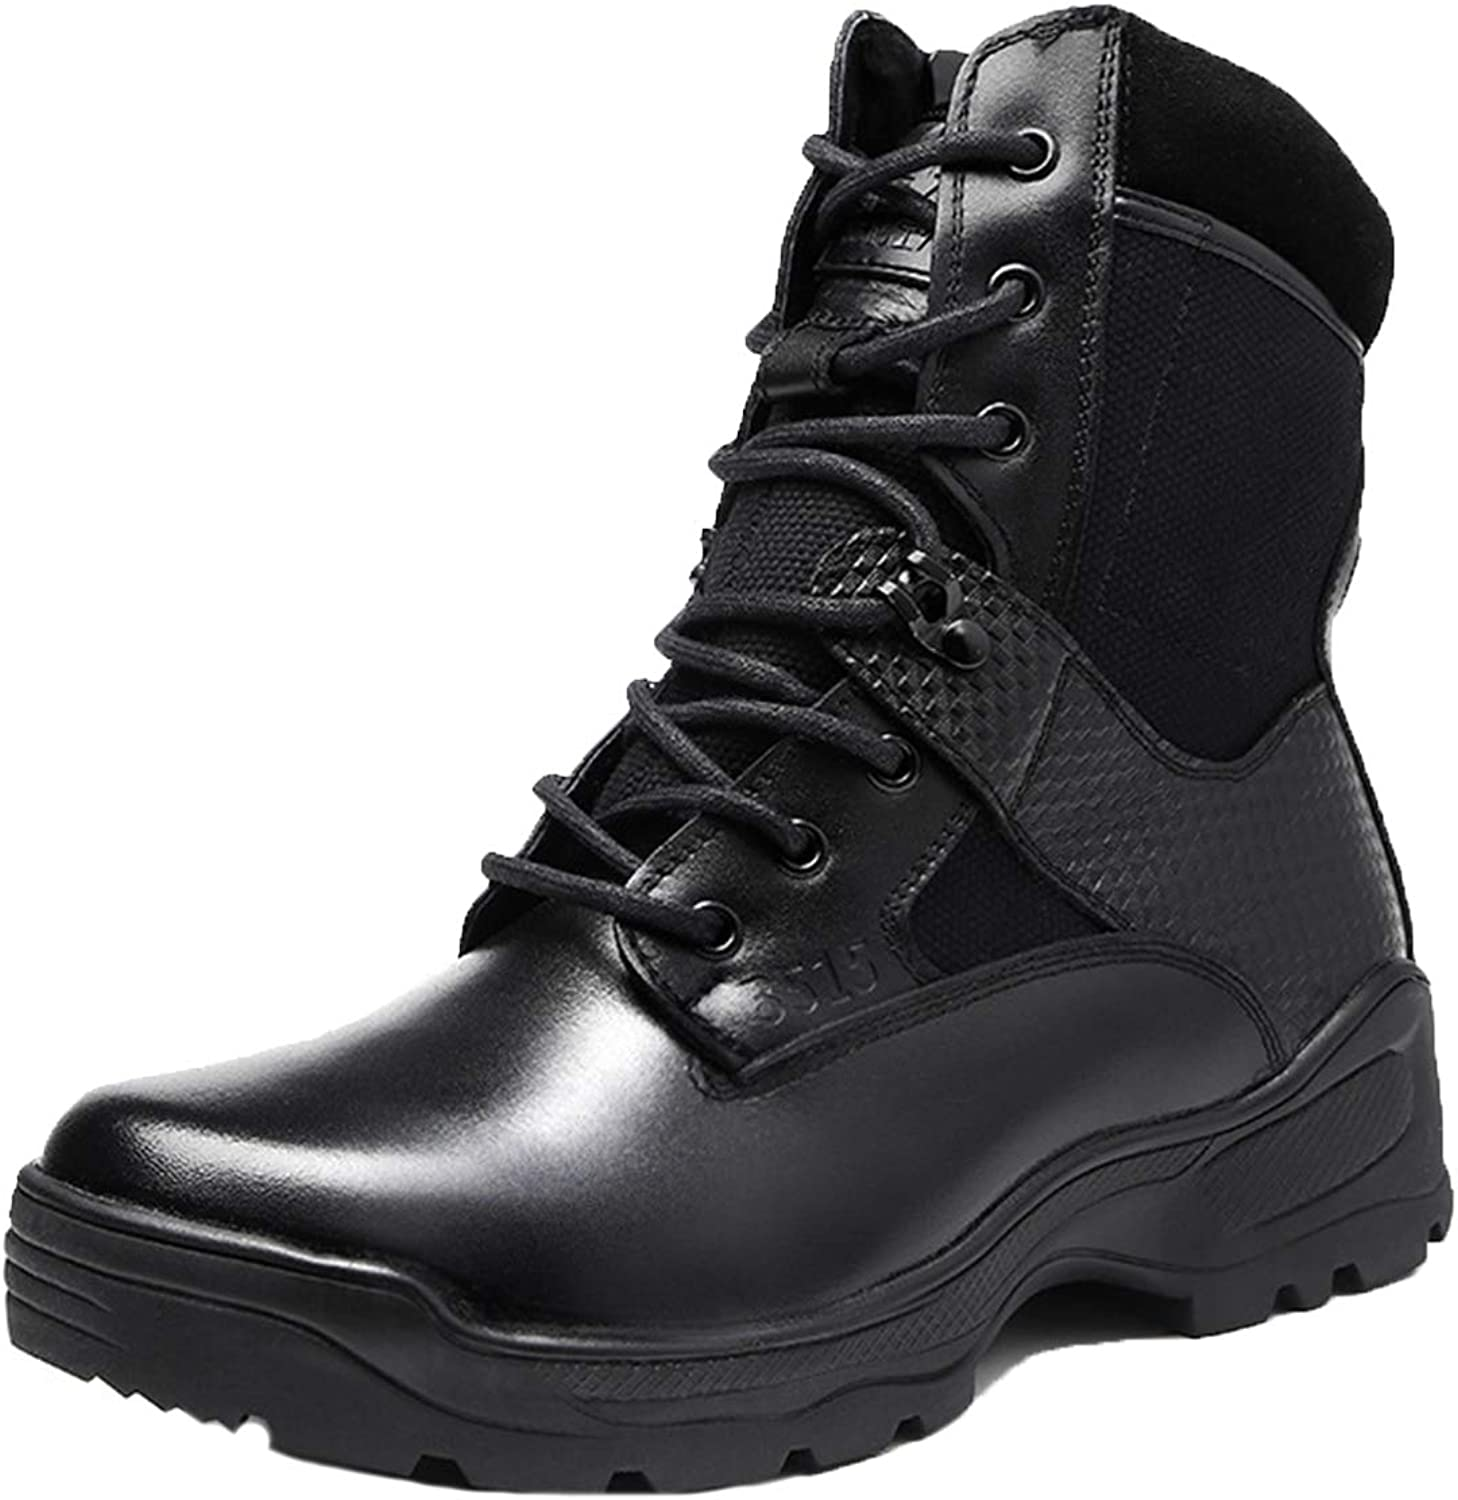 new product f3d9a c8ea6 HNGLXQ Combat Boots G-109 Leather Side Zip Zip Zip Army ...